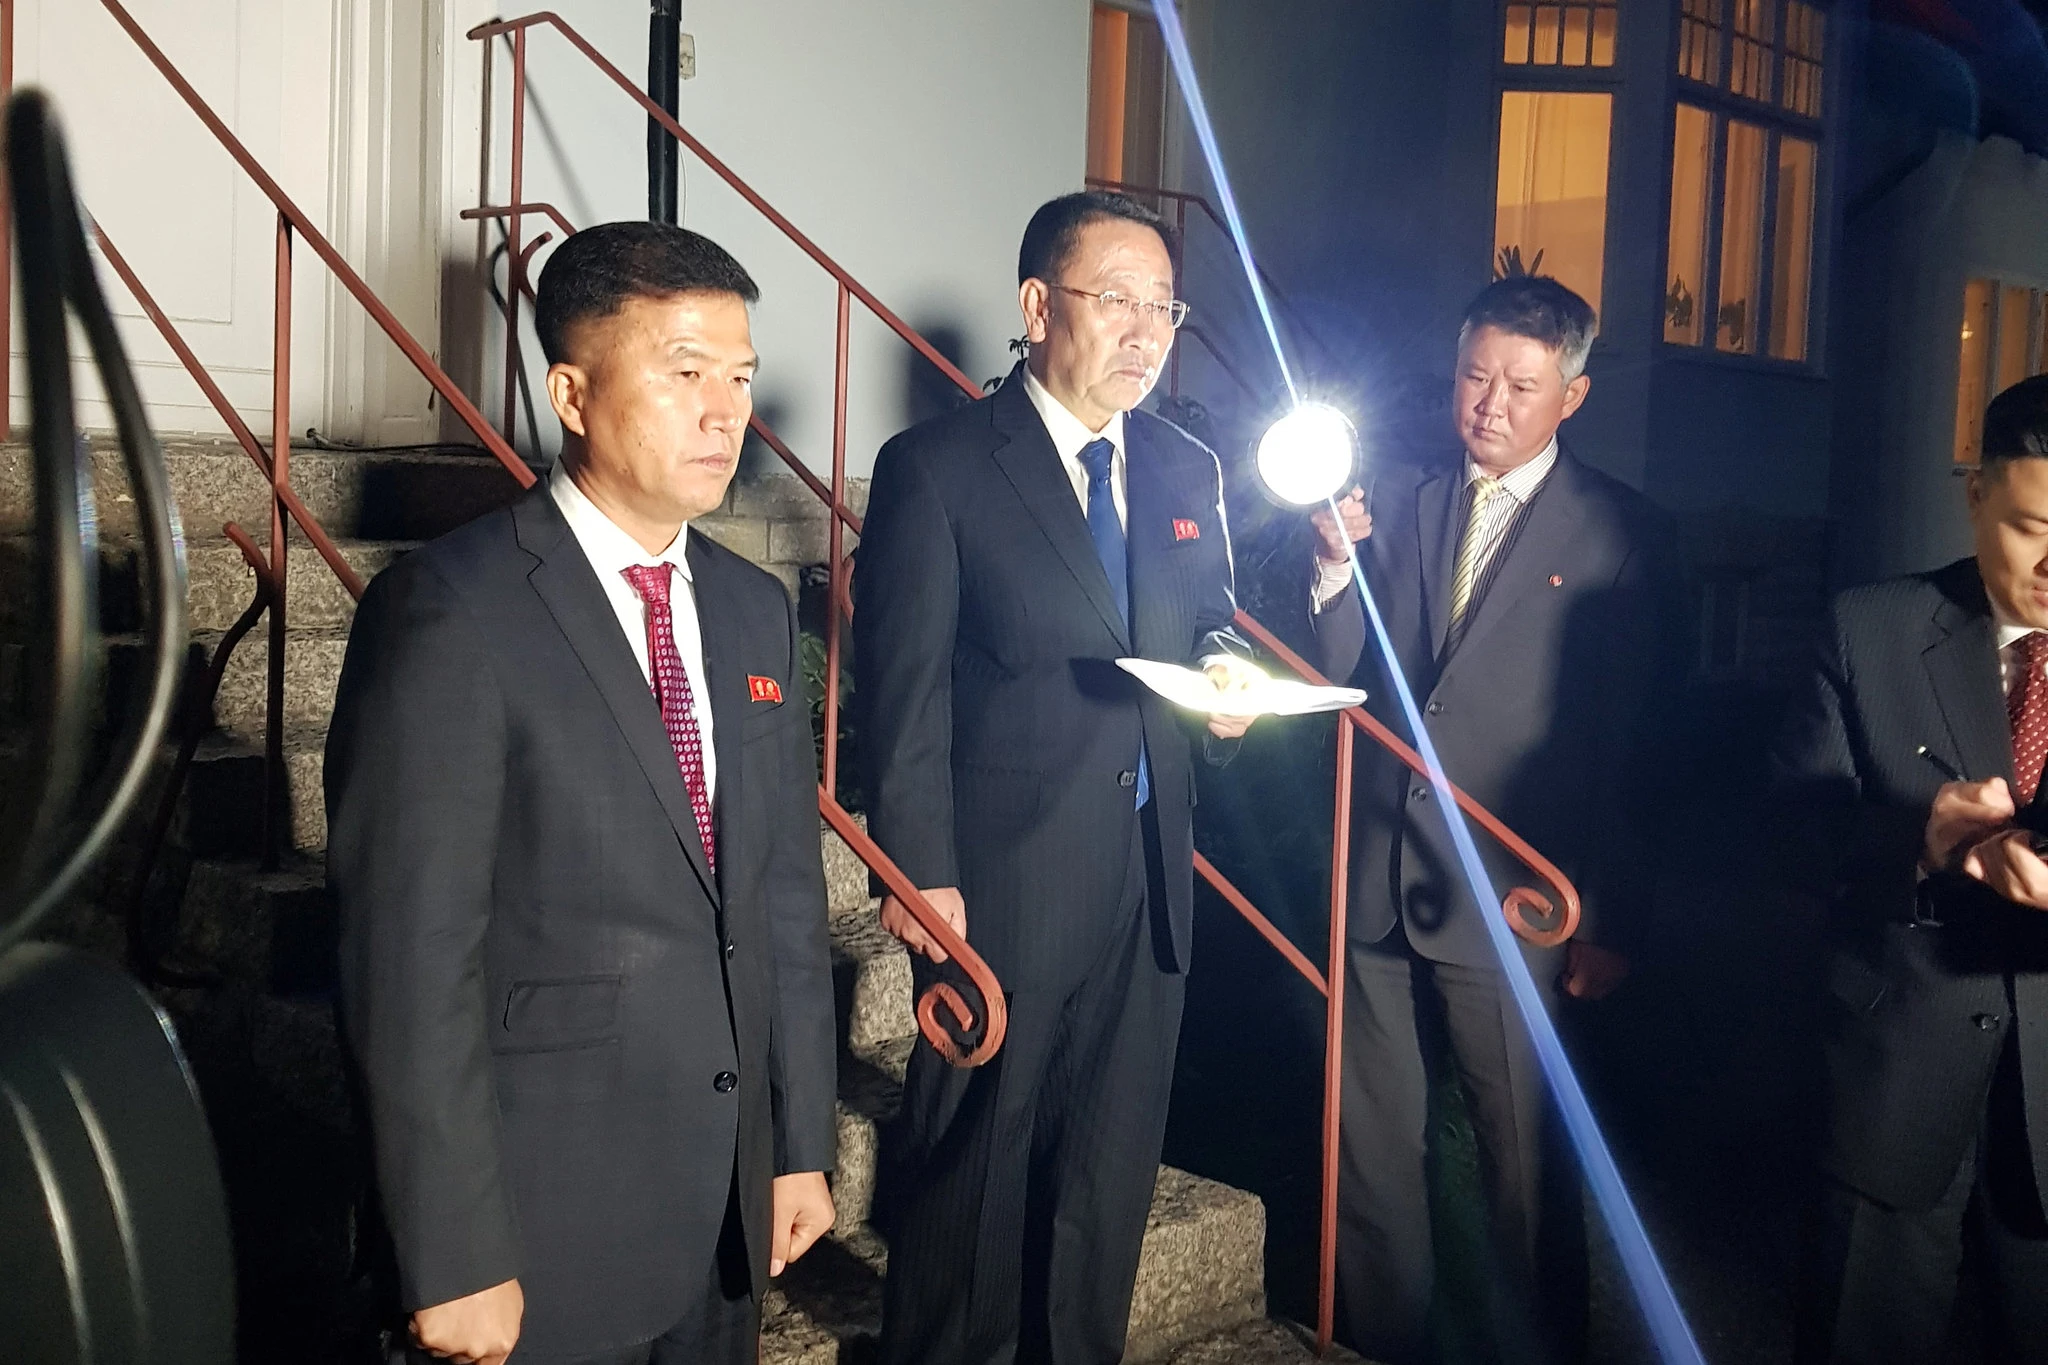 Chief North Korean Negotiator Kim Myong-Gil outside the North Korean Embassy on Saturday after negotiations collapsed. Photo: Phillip O'Connor /  Reuters